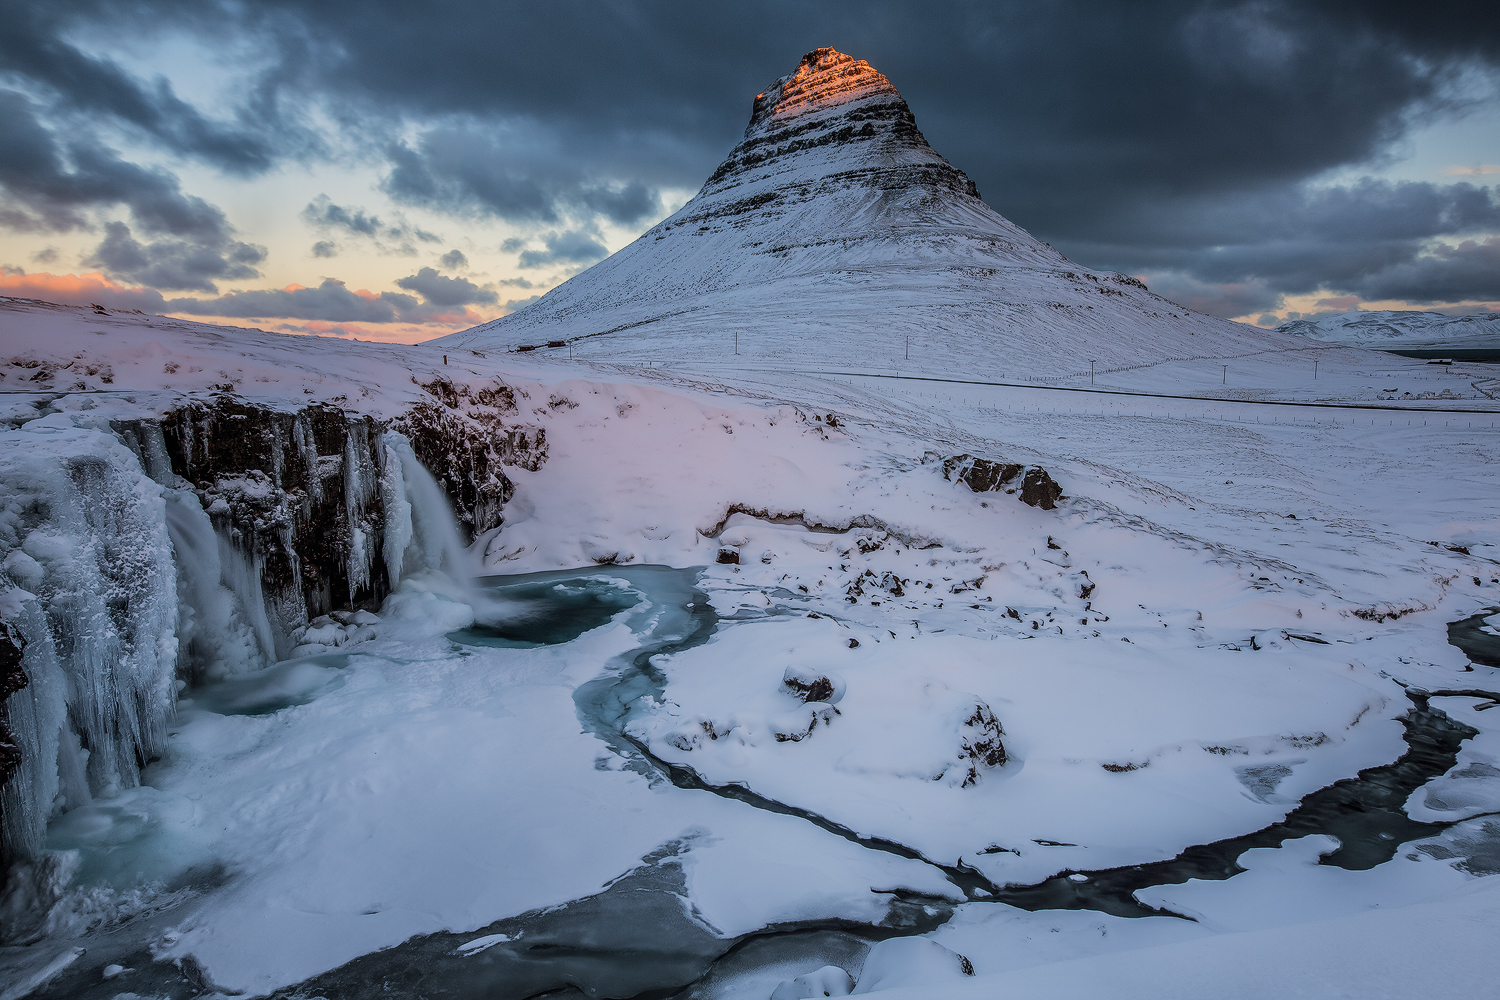 Mount Kirkjufell in known for its strange angular shapes which makes it a popular location for photographers.